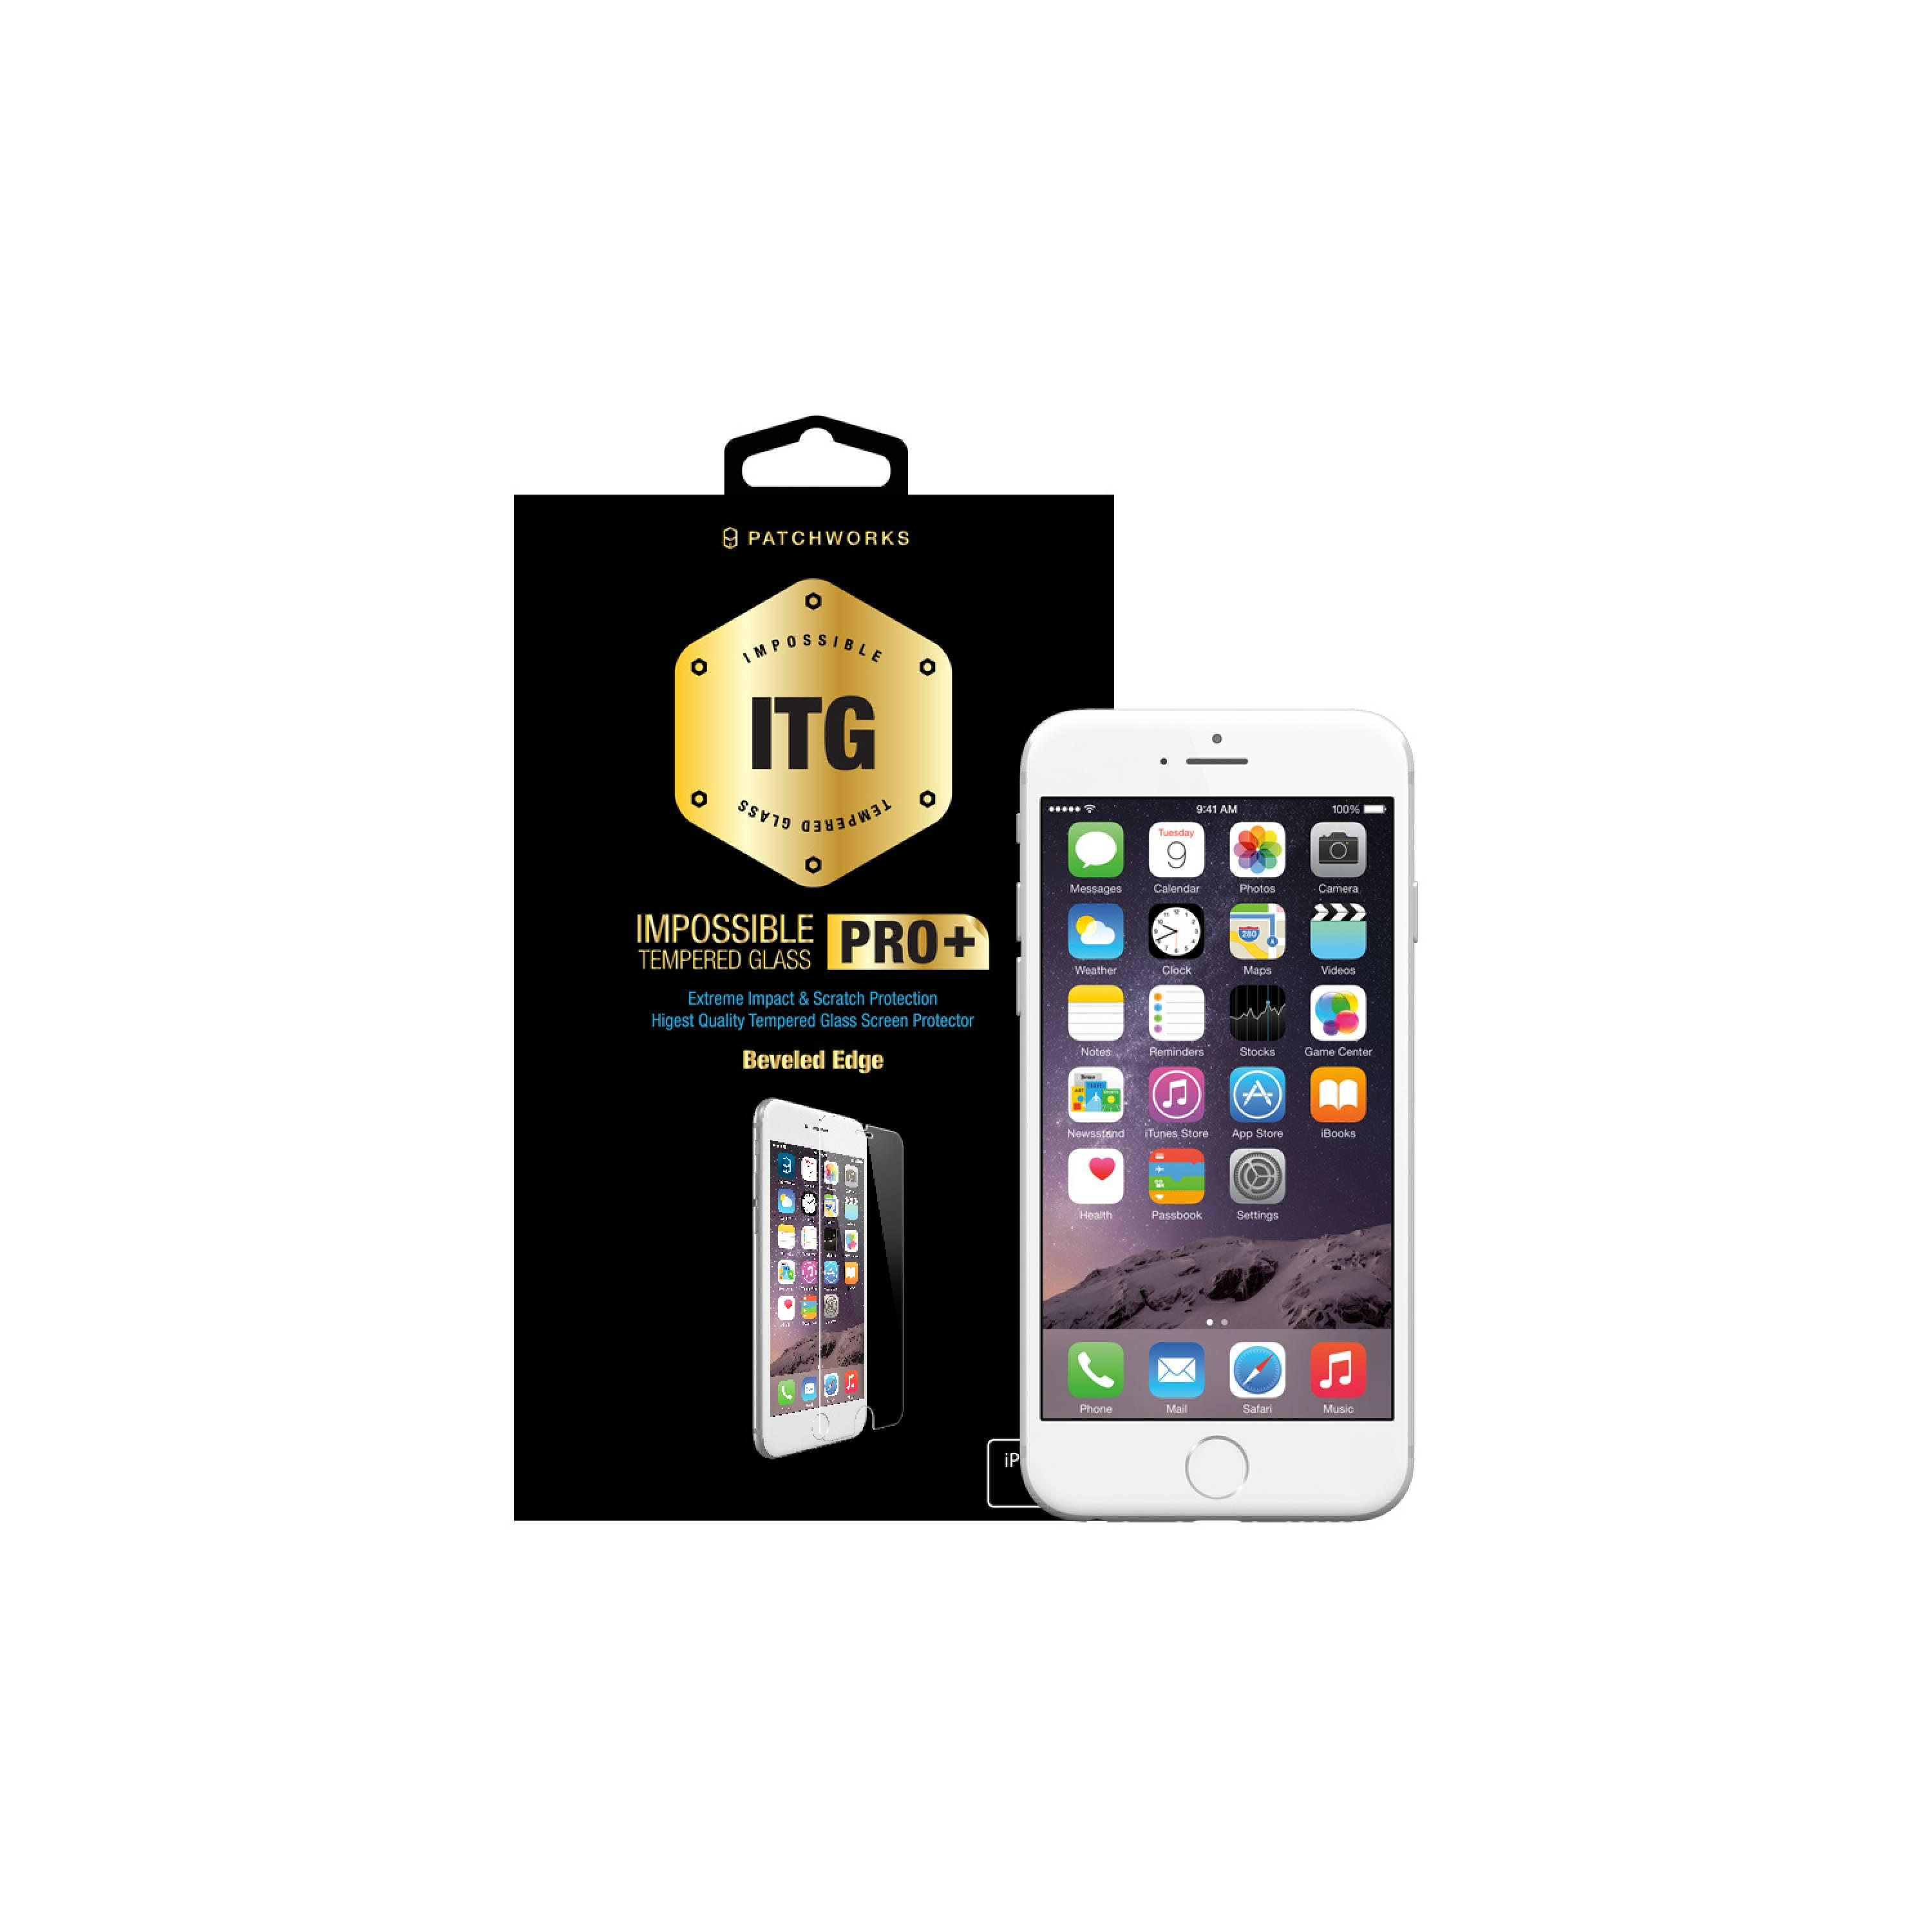 Colorant iPhone 5S USG ITG Pro Plus - Glass Clear [Packing Rusak]